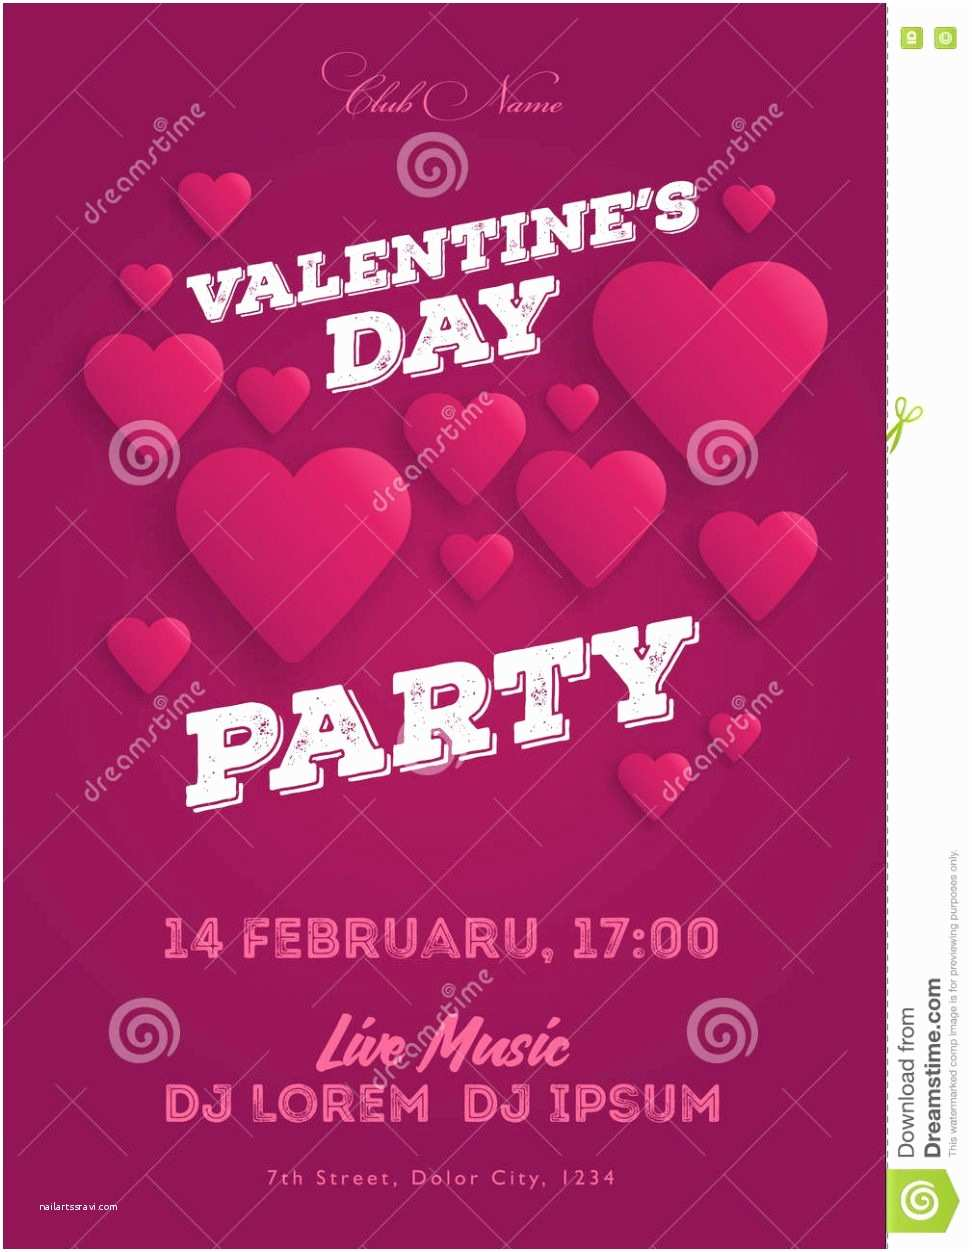 Valentines Day Party Invitations Party Invitation Templates Valentine S Day Party